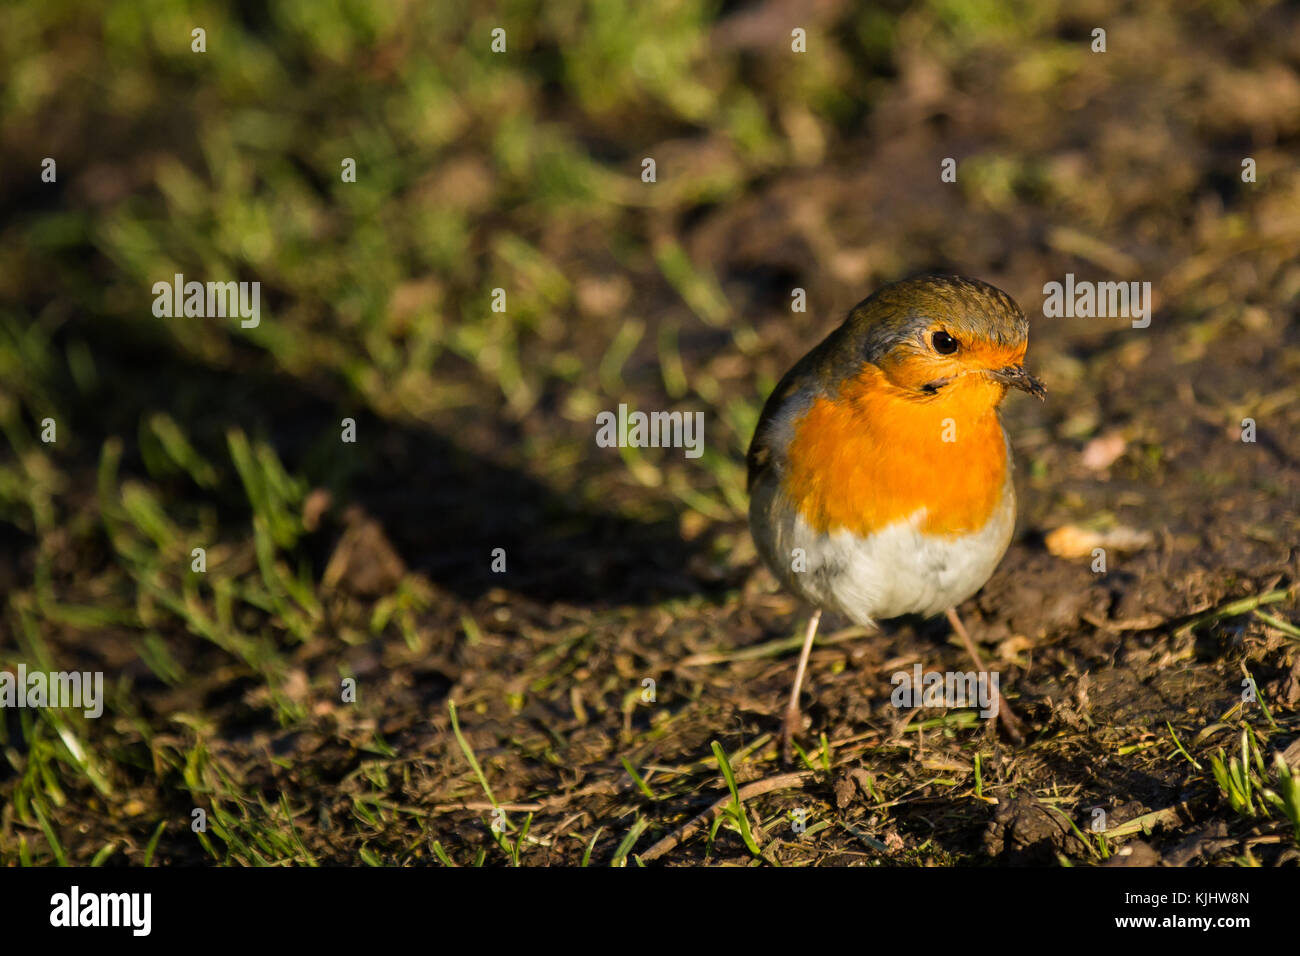 A little robin, with a muddy beak on the grass. Barn Hill, Wembley Park - Stock Image